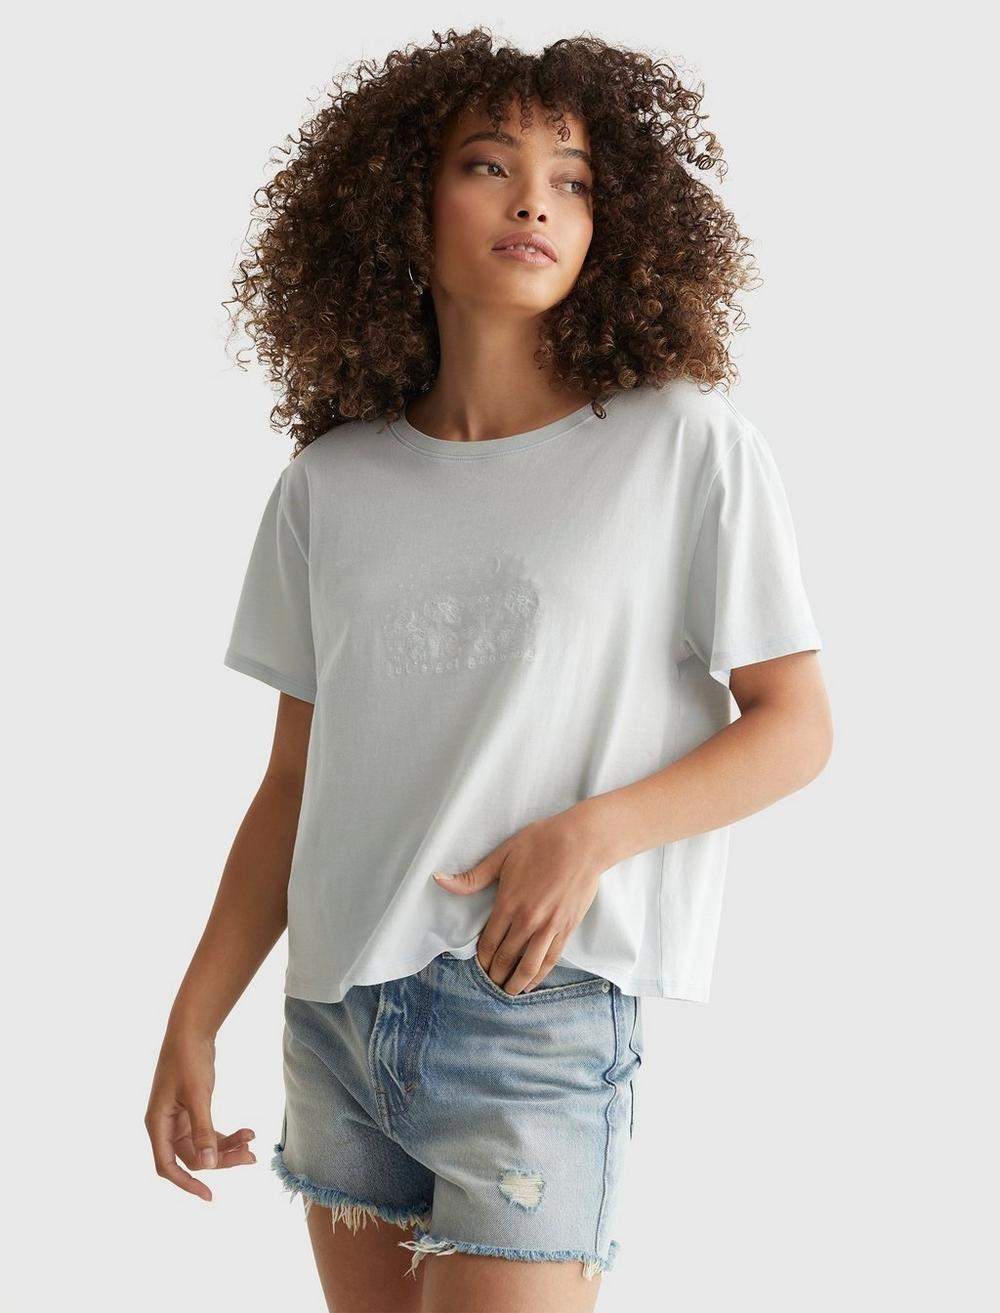 EMBROIDERED MIS FLORAL CROP TEE, image 1